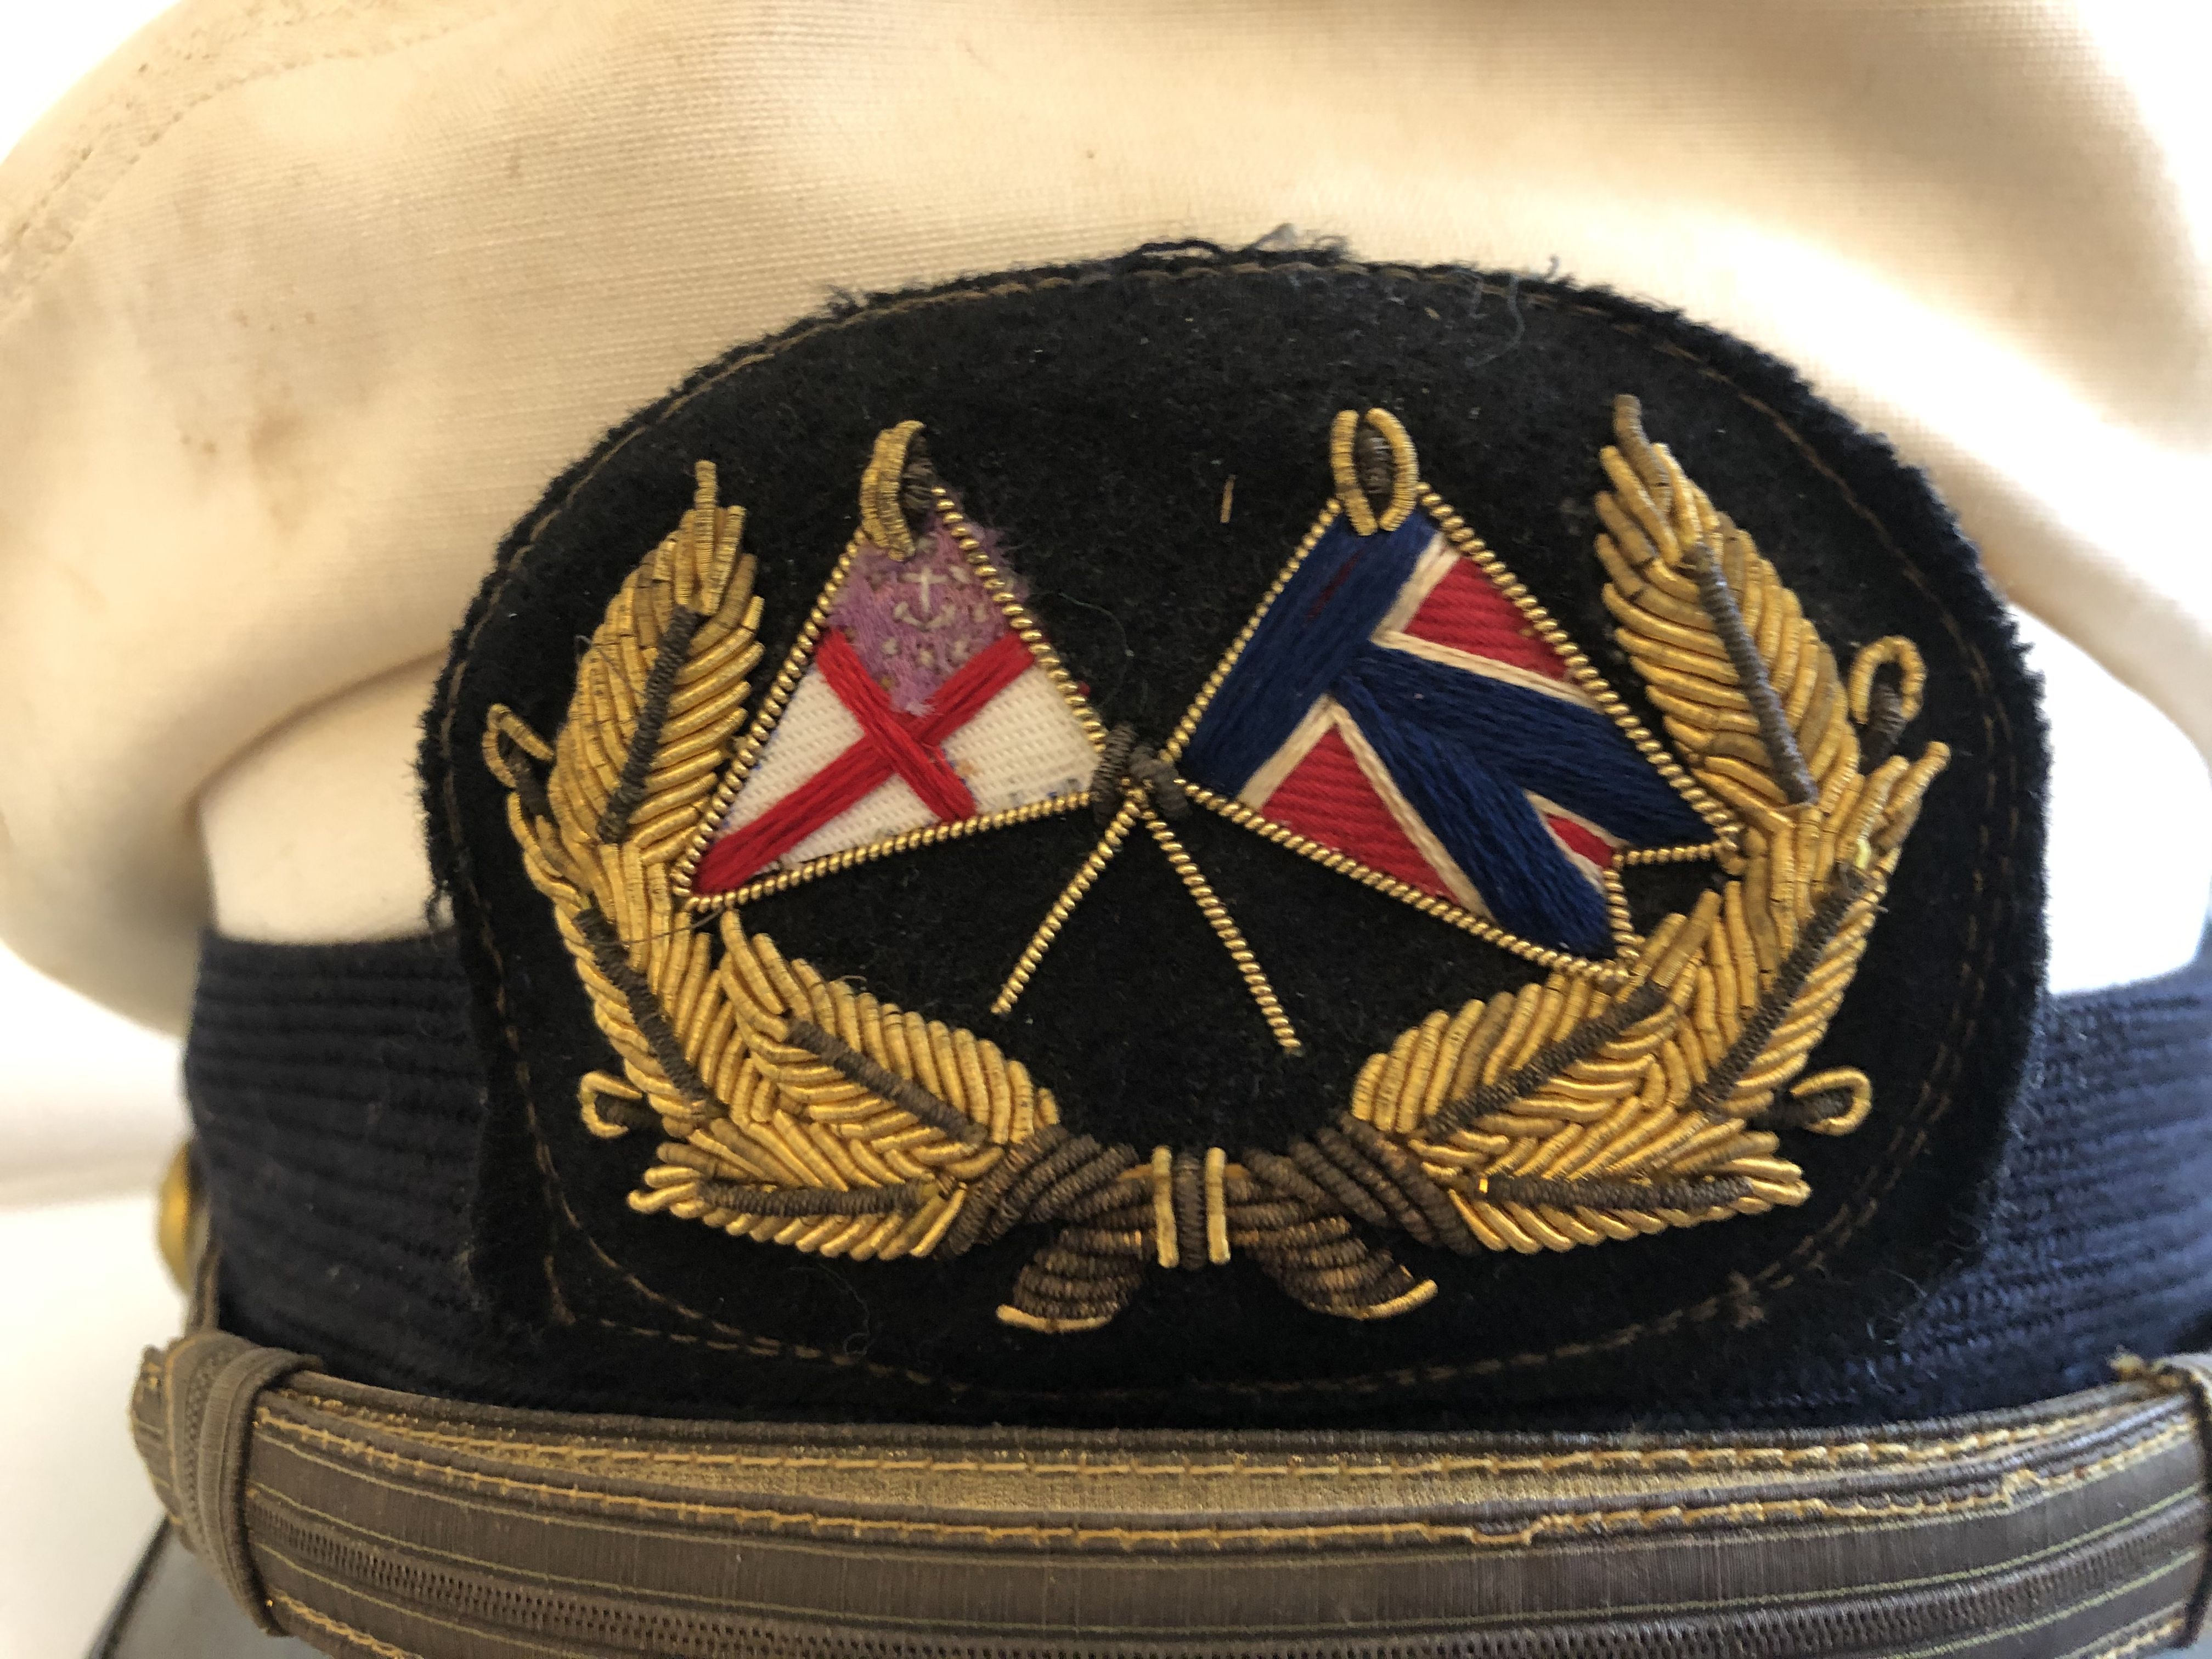 Yachting Cap worn on A. Atwater Kent, Jr.'s boats